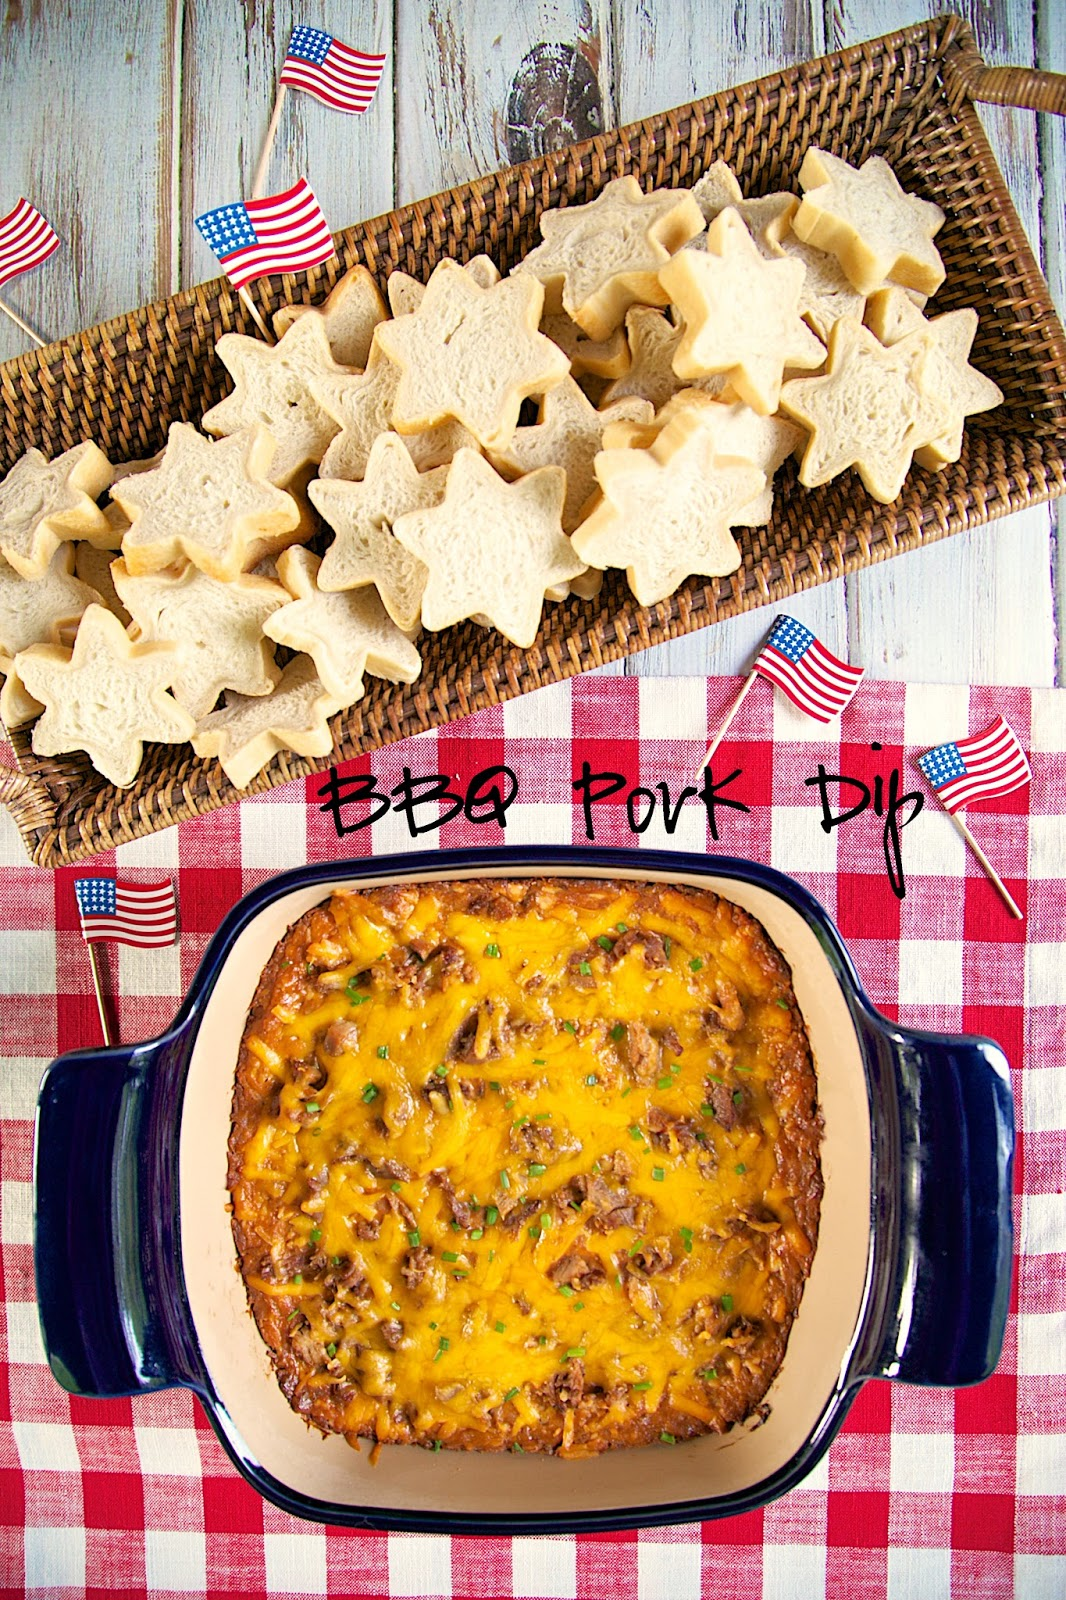 BBQ Pork Dip - THE BEST! I could make a meal out of this dip! Pork, cream cheese, Ranch, BBQ sauce, cheddar cheese and green onions. YUM! You can make this dip ahead of time and refrigerate until you are ready to bake. Perfect for bringing to a party!